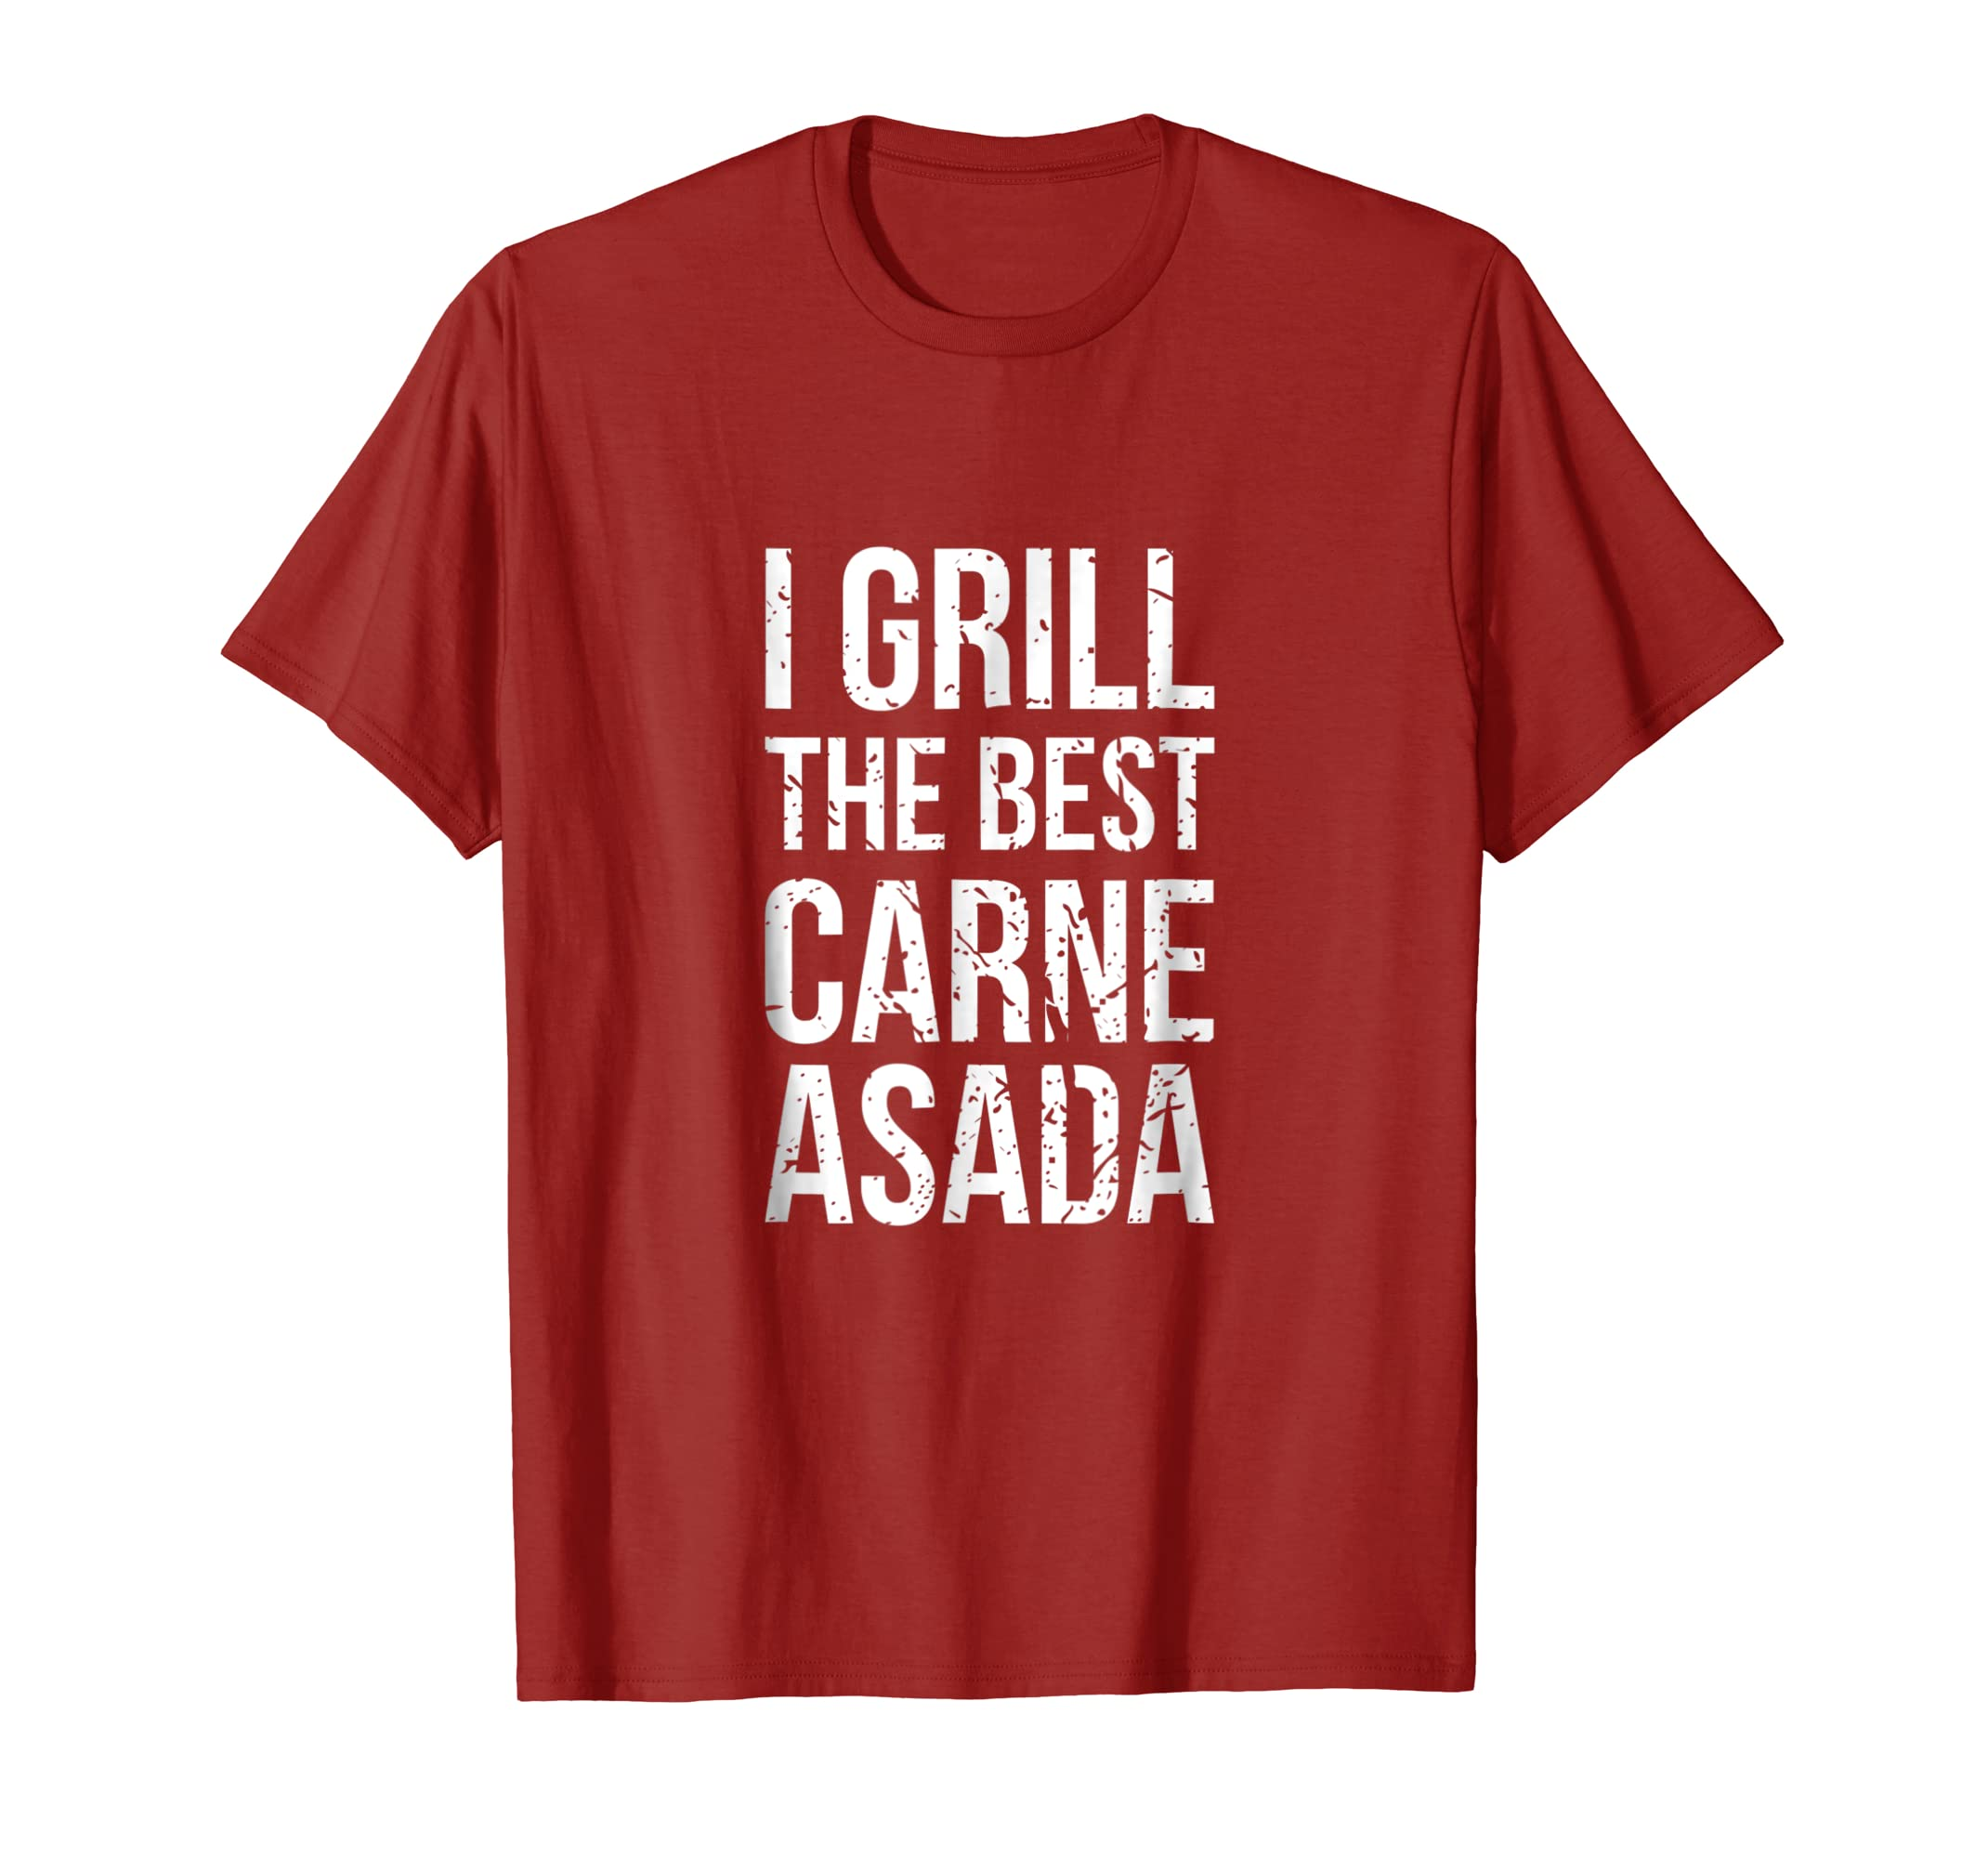 Amazon.com: I Grill the Best Carne Asada - FUNNY SPANISH COOKOUT SHIRT: Clothing